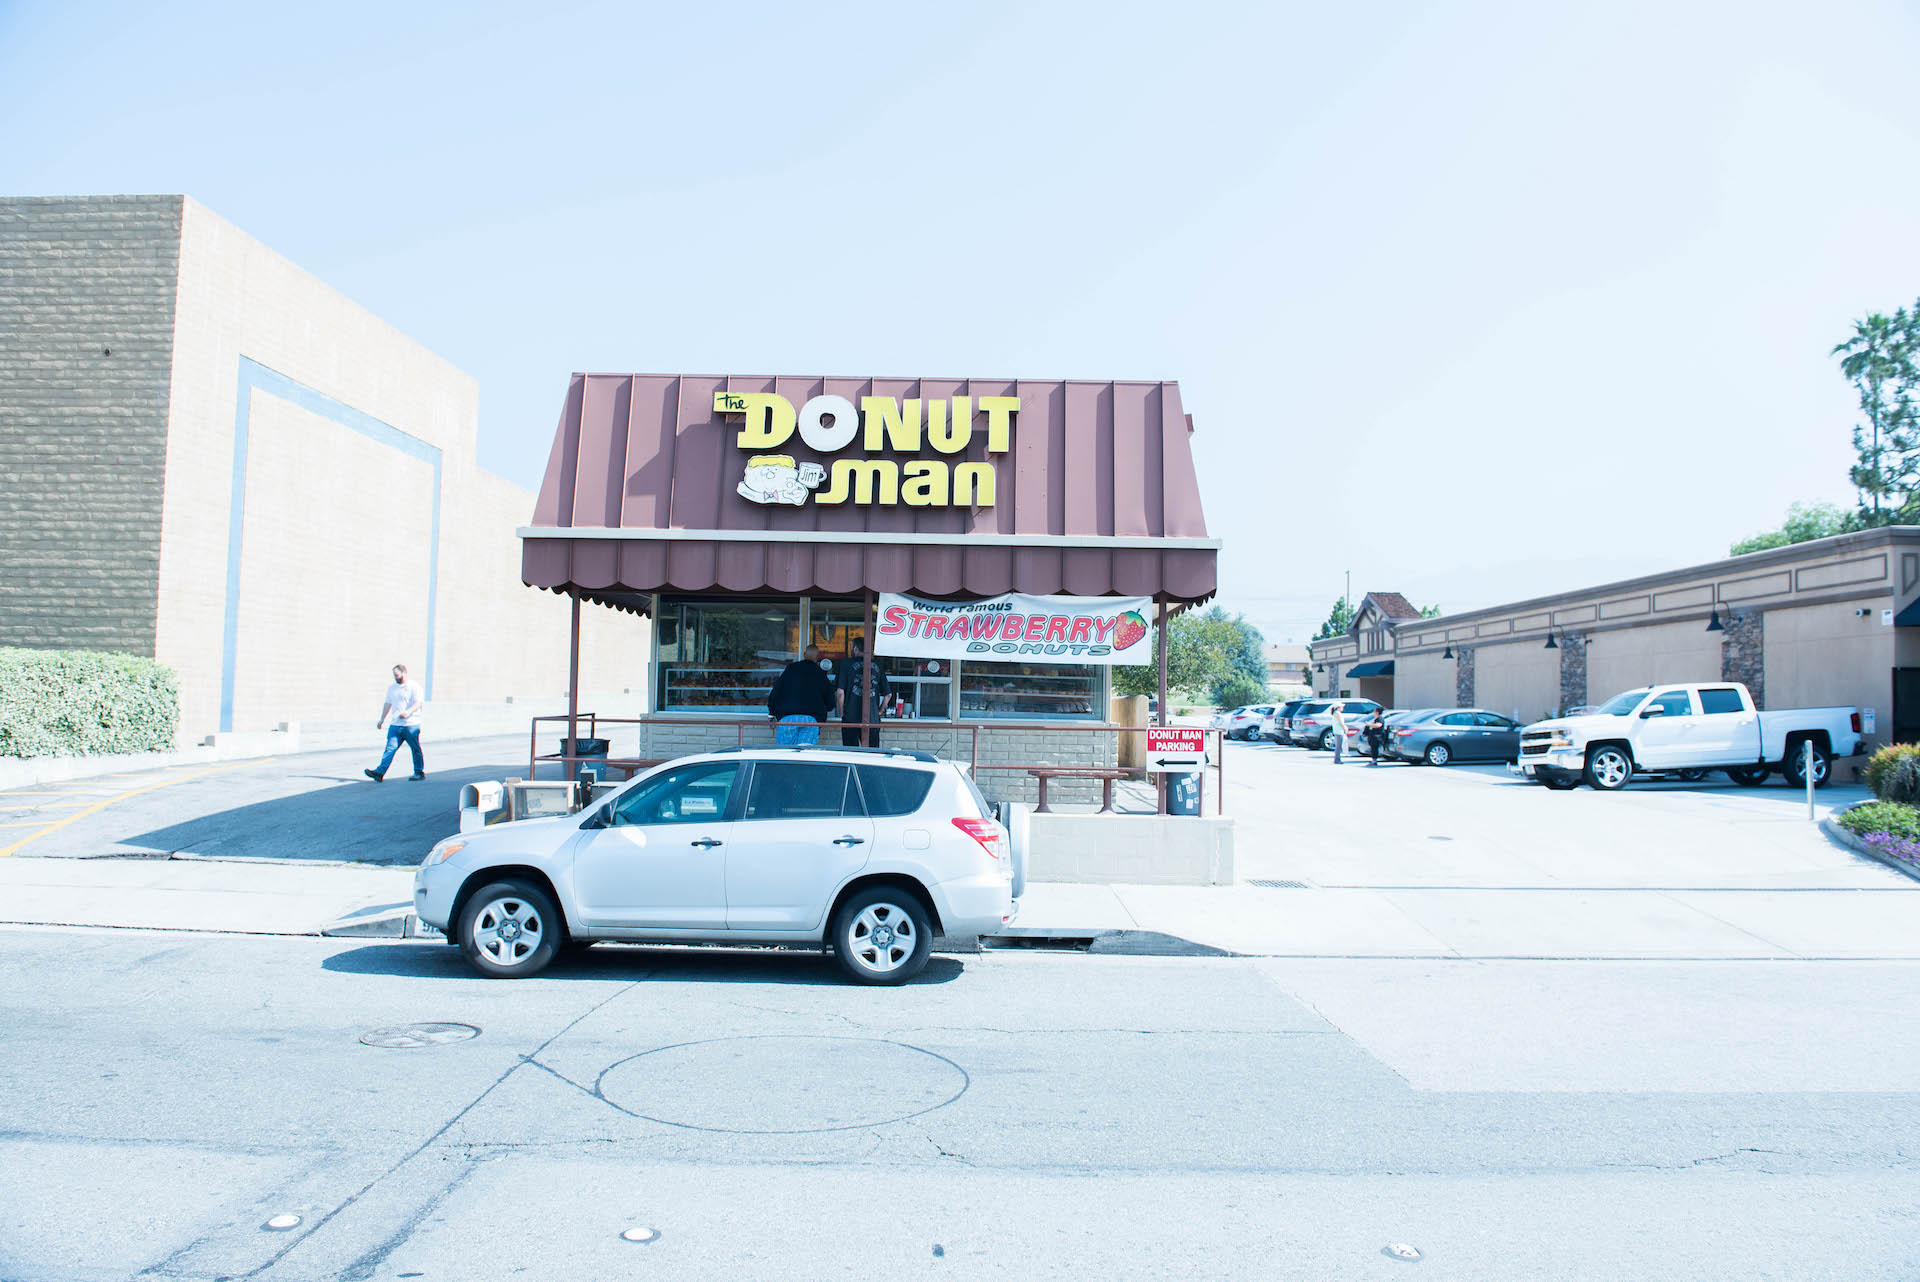 Donut Man is open 24 hours and attracts folks from all over.